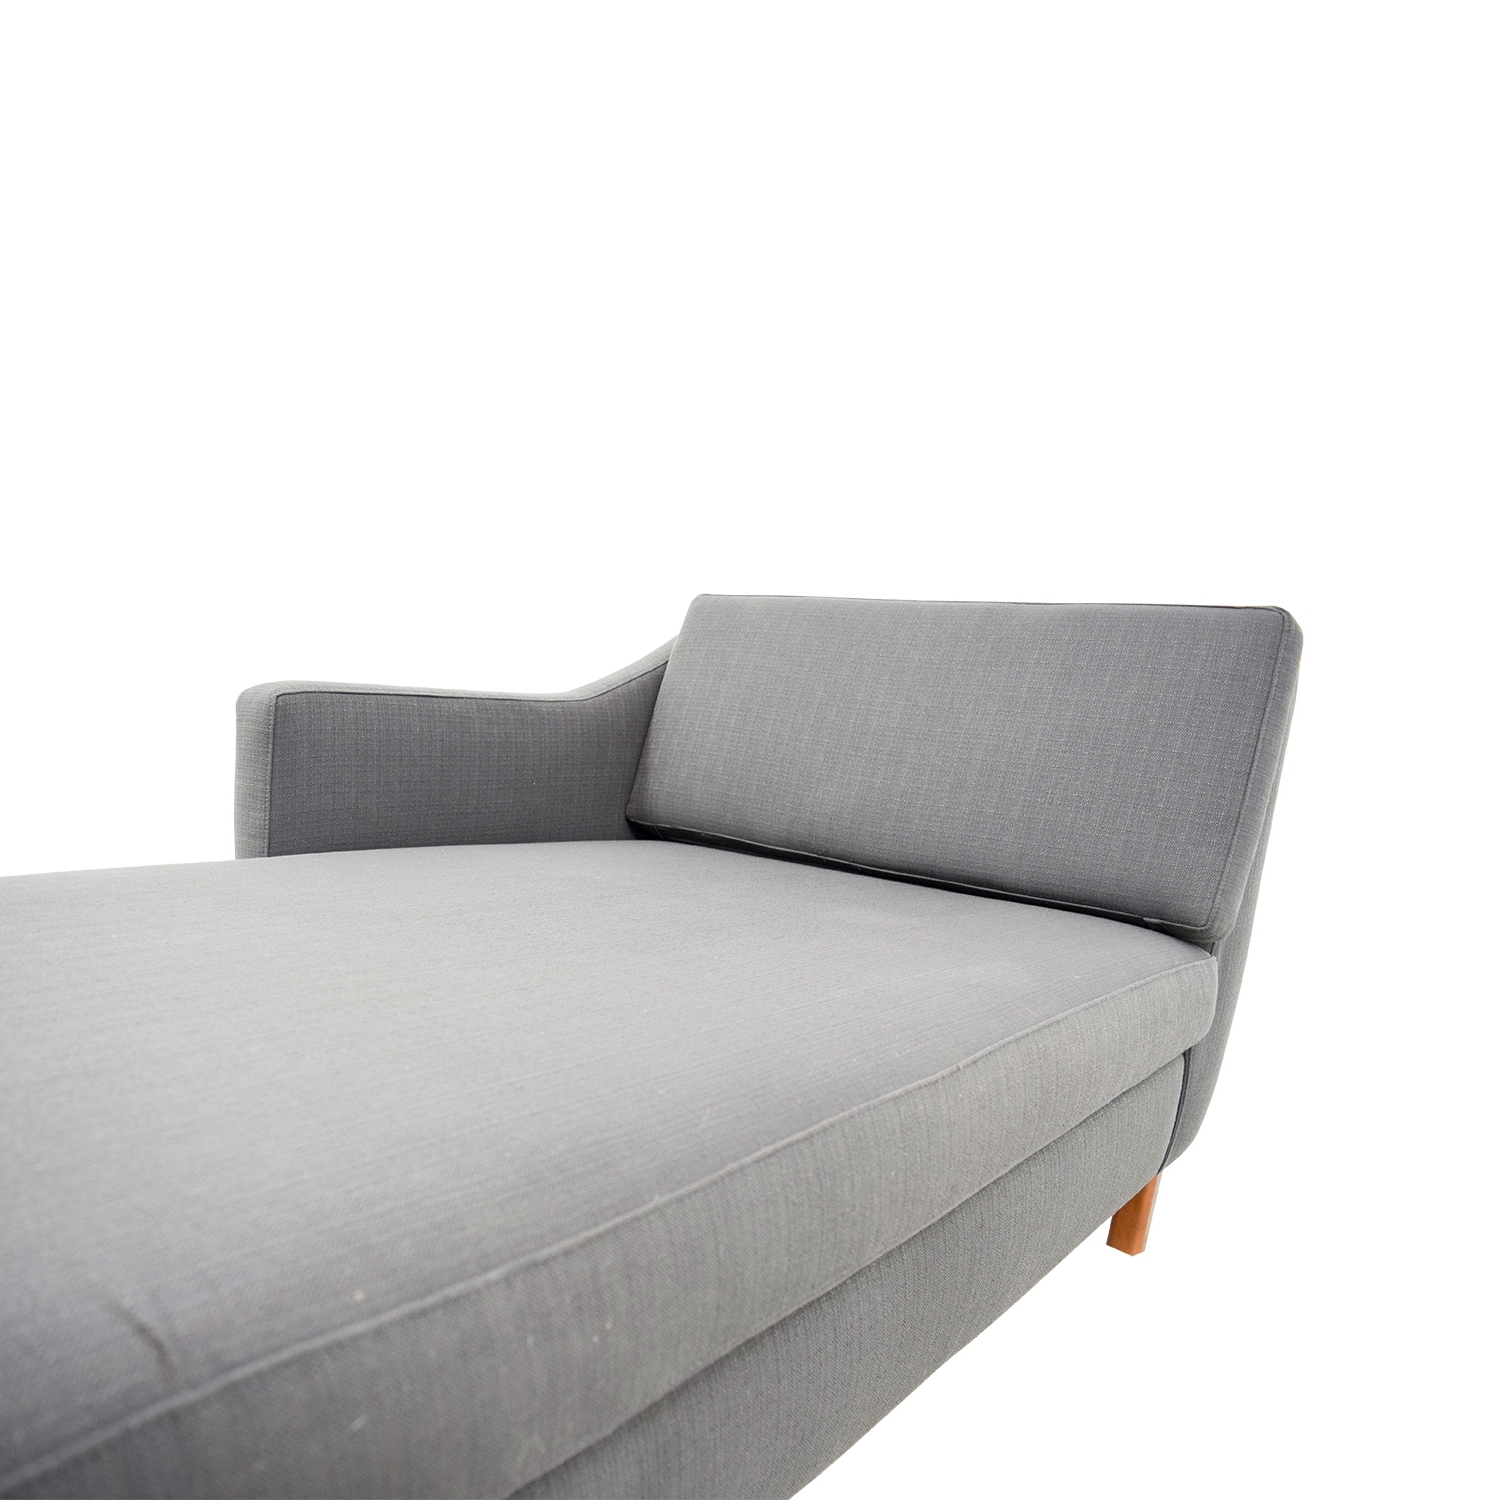 [%72% Off – Benchmade Modern Benchmade Modern Gray Single Arm Chaise Intended For Preferred Gray Chaises|Gray Chaises Regarding 2018 72% Off – Benchmade Modern Benchmade Modern Gray Single Arm Chaise|Fashionable Gray Chaises Inside 72% Off – Benchmade Modern Benchmade Modern Gray Single Arm Chaise|2017 72% Off – Benchmade Modern Benchmade Modern Gray Single Arm Chaise Inside Gray Chaises%] (View 7 of 15)